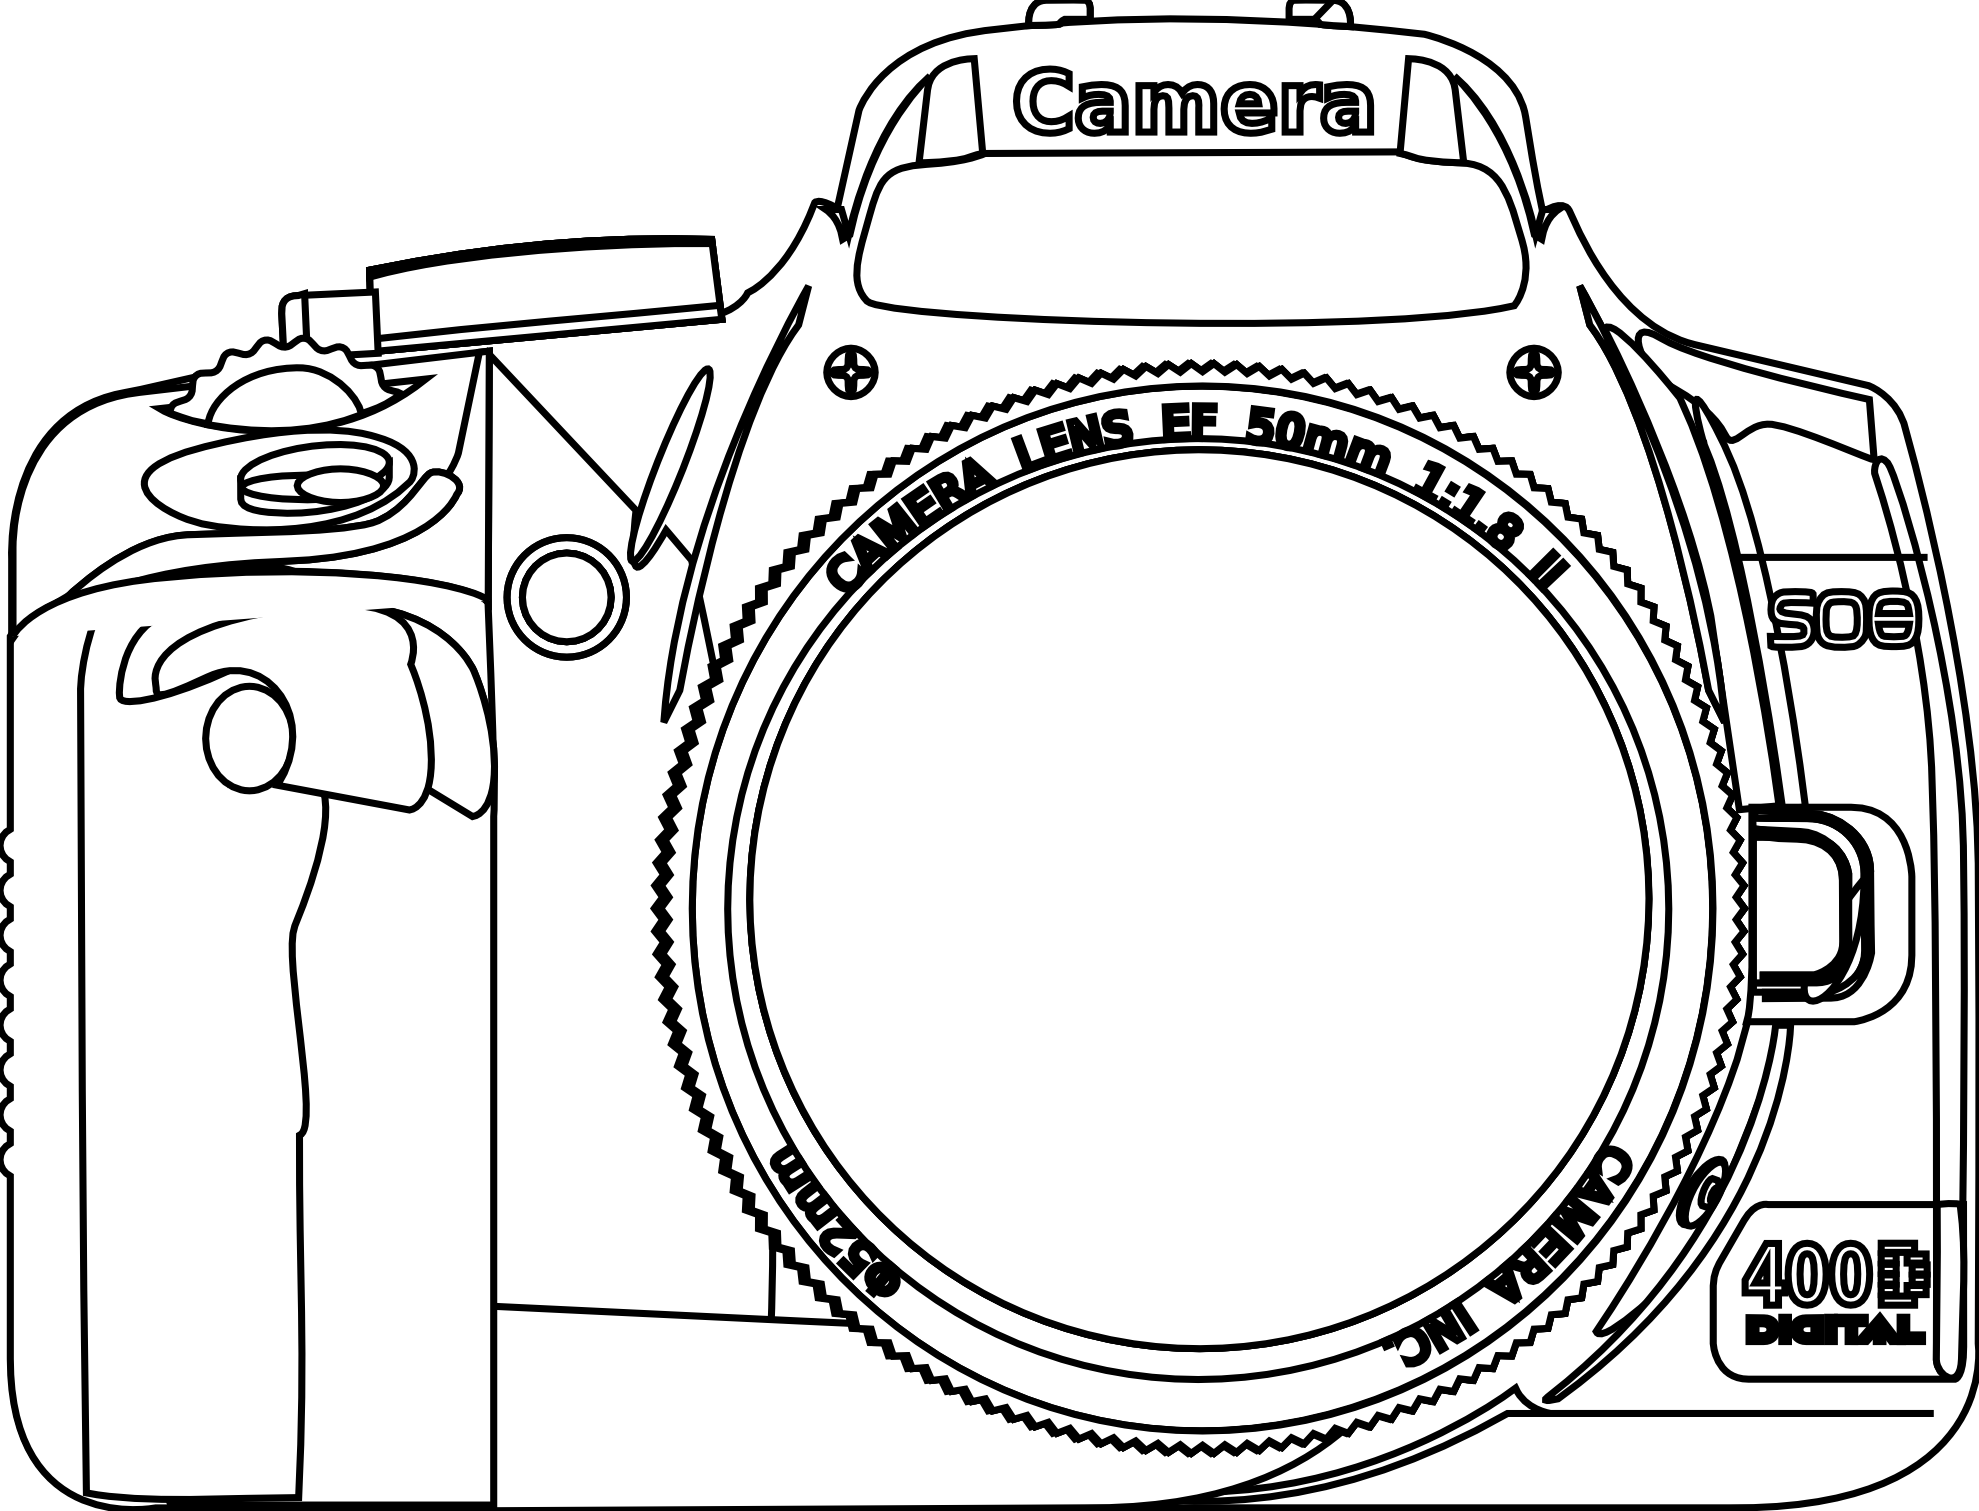 Image result for dslr. Yearbook clipart digital camera